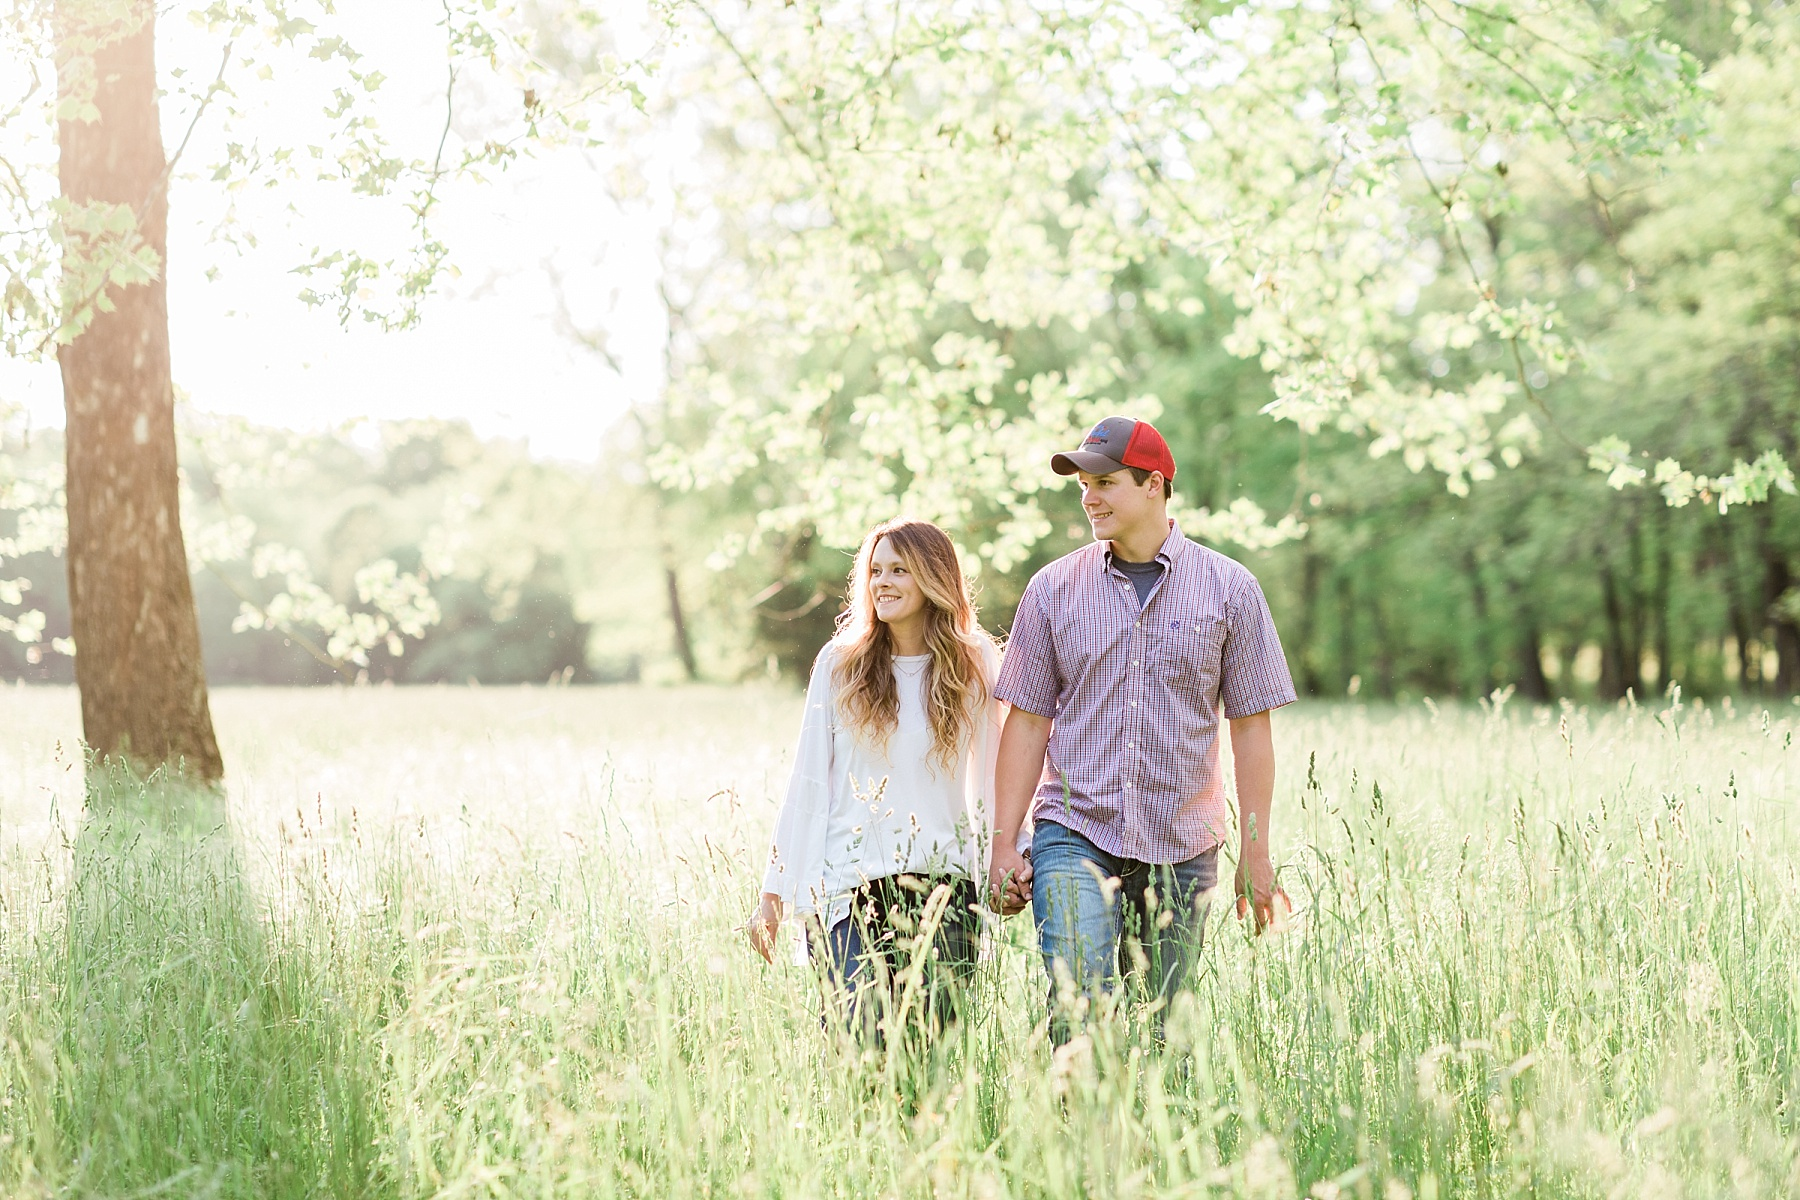 Spring Engagement Session in Open Field at Sunset by Kelsi Kliethermes Photography Best Missouri and Maui Wedding Photographer_0005.jpg